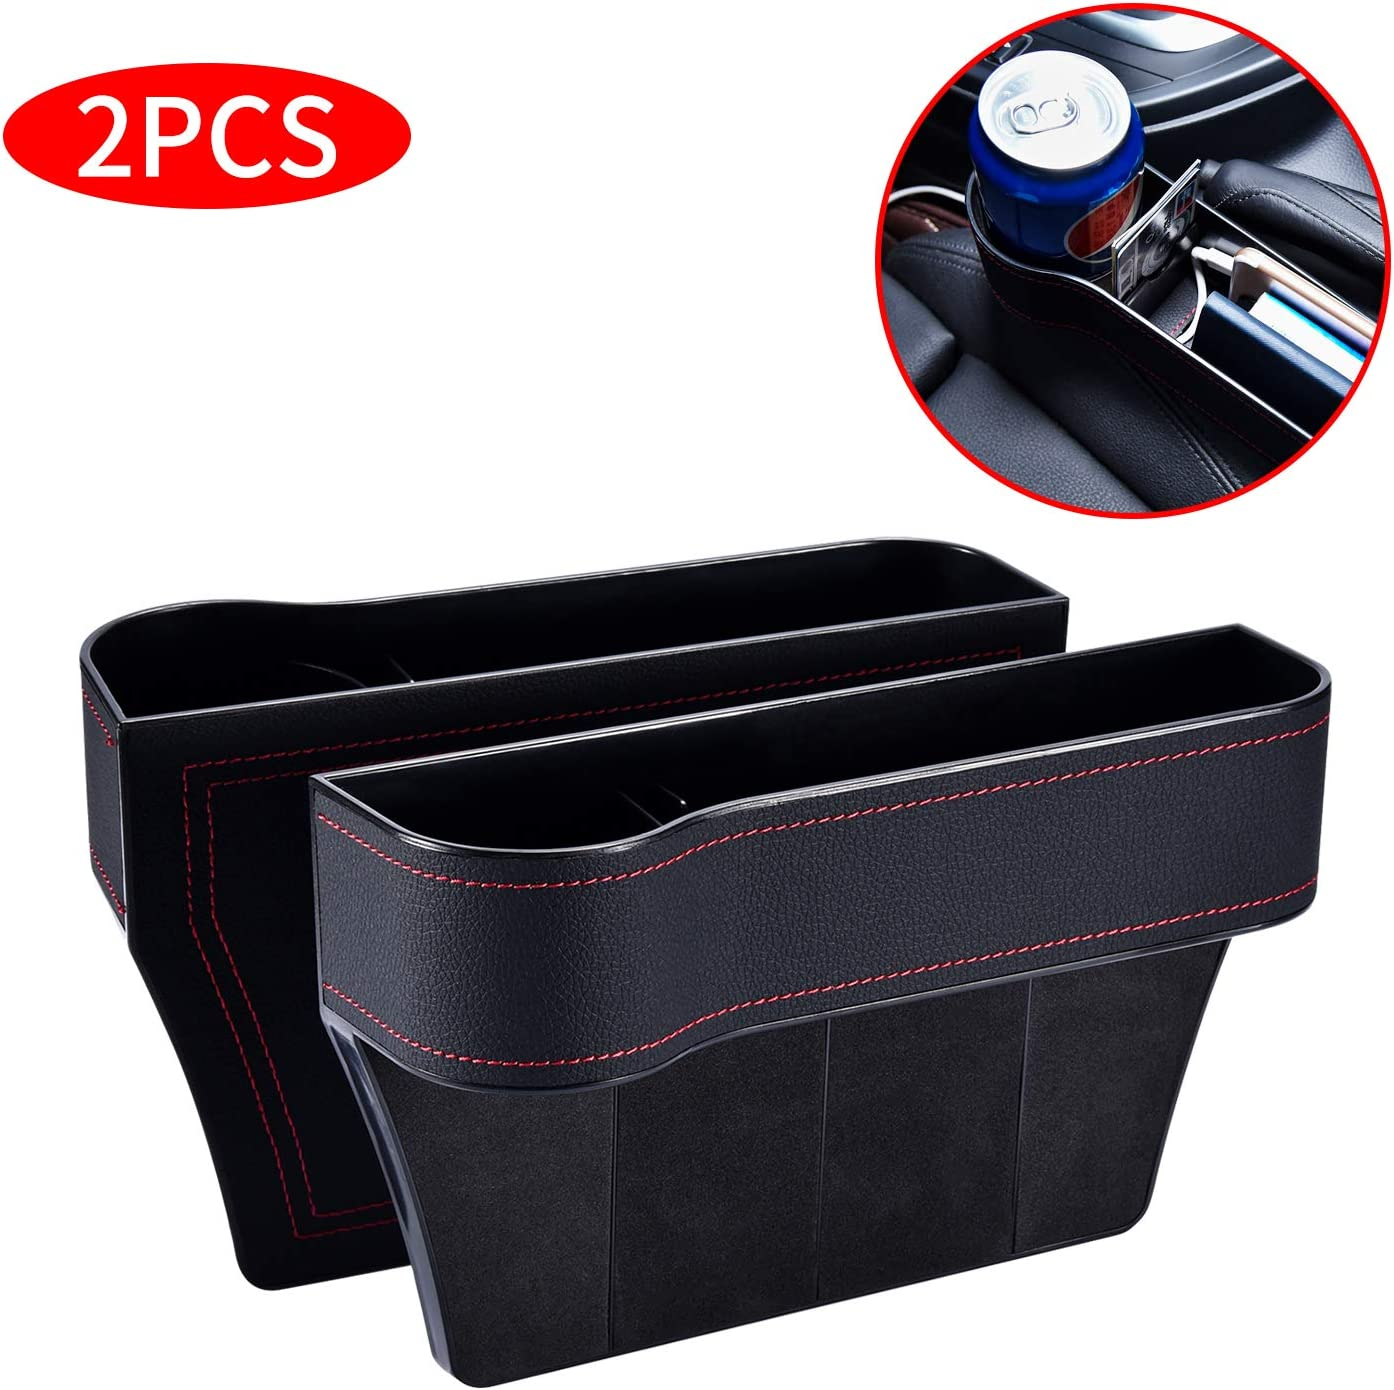 Car Console Side Organizer for Cellphone,Wallet Cup Holder Red Various Cards 2 Packs Car Seat Gap Filler PU Car Seat Organizer with Cup Holder